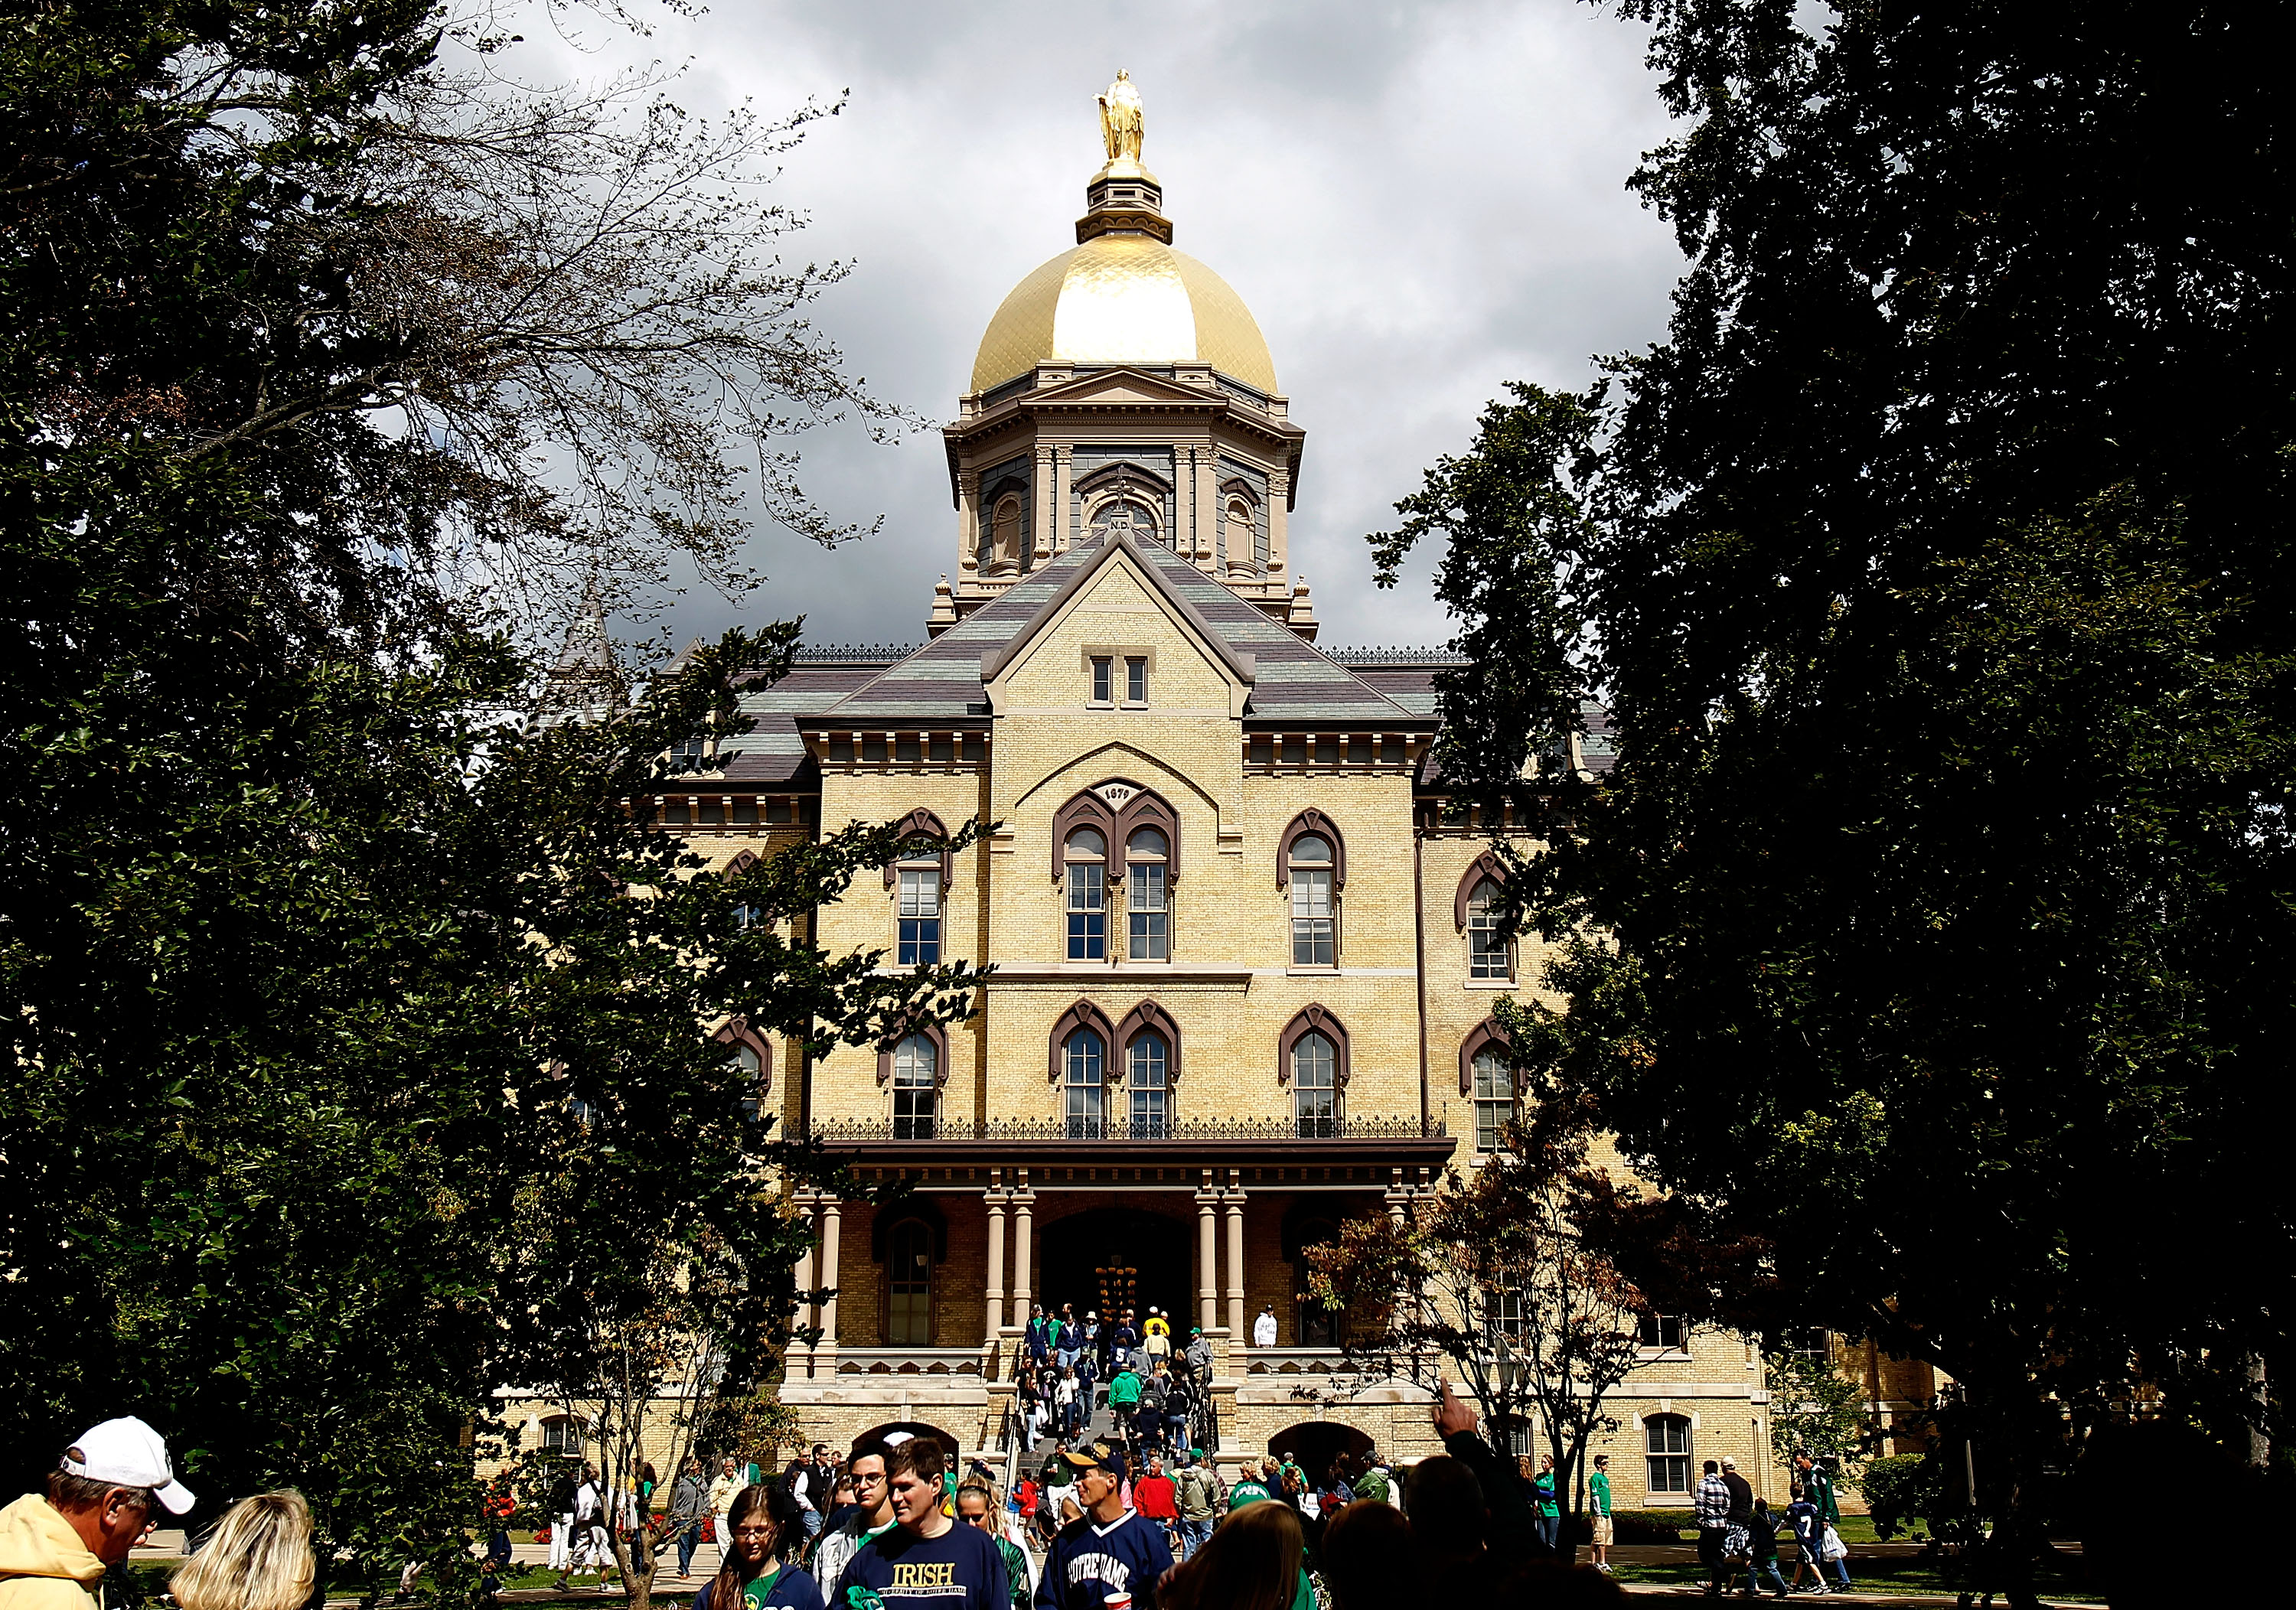 SOUTH BEND, IN - SEPTEMBER 04: The 'Golden Dome' is seen on the campus of Notre Dame University before a game between the Notre Dame Fighting Irish and the Purdue Boilermakers at Notre Dame Stadium on September 4, 2010 in South Bend, Indiana. (Photo by Jo